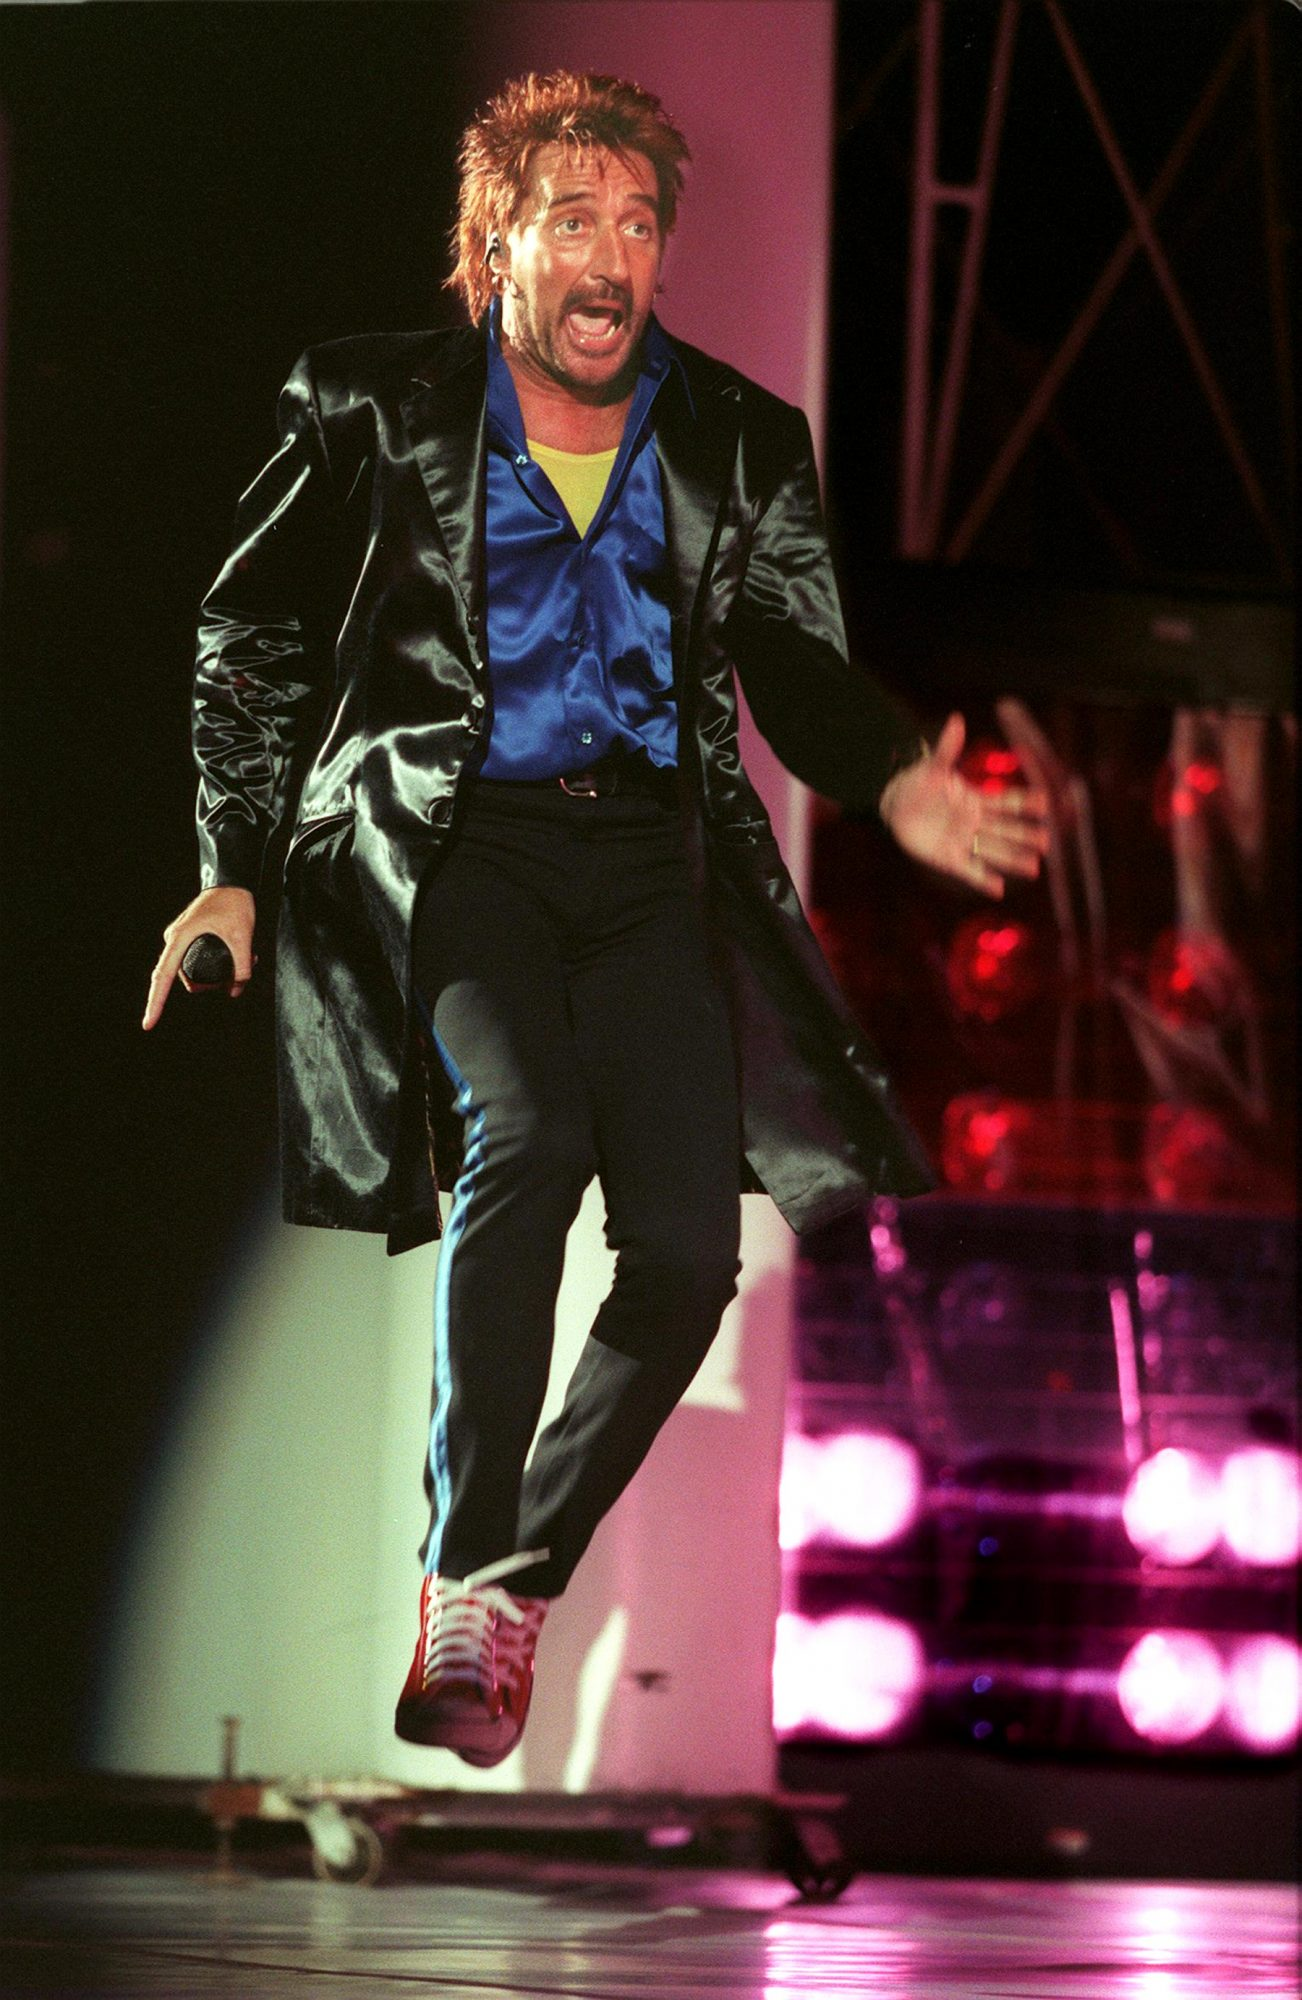 Rod Stewart performs in concert at the Hollywood Bowl in Hollywood. Stewart has been performing for